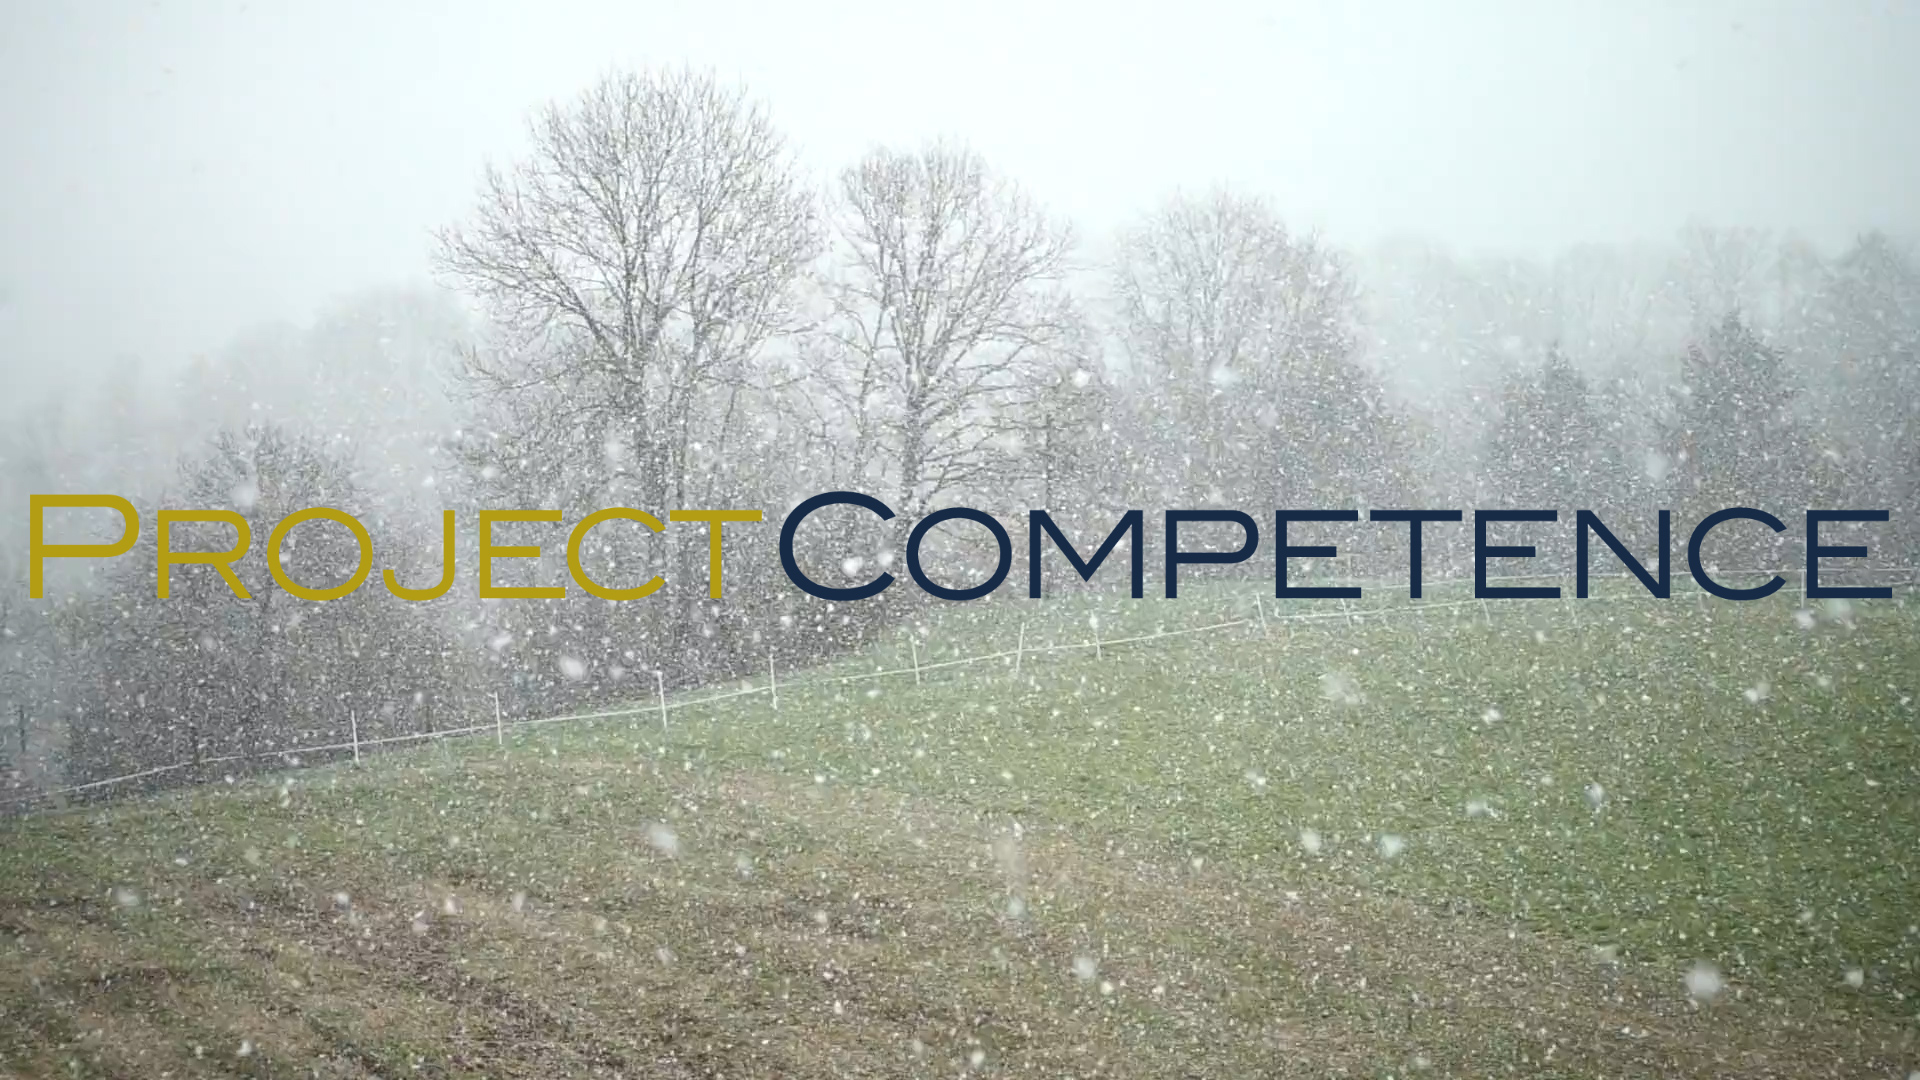 Weihnachts-Gruss 2020 Project Competence